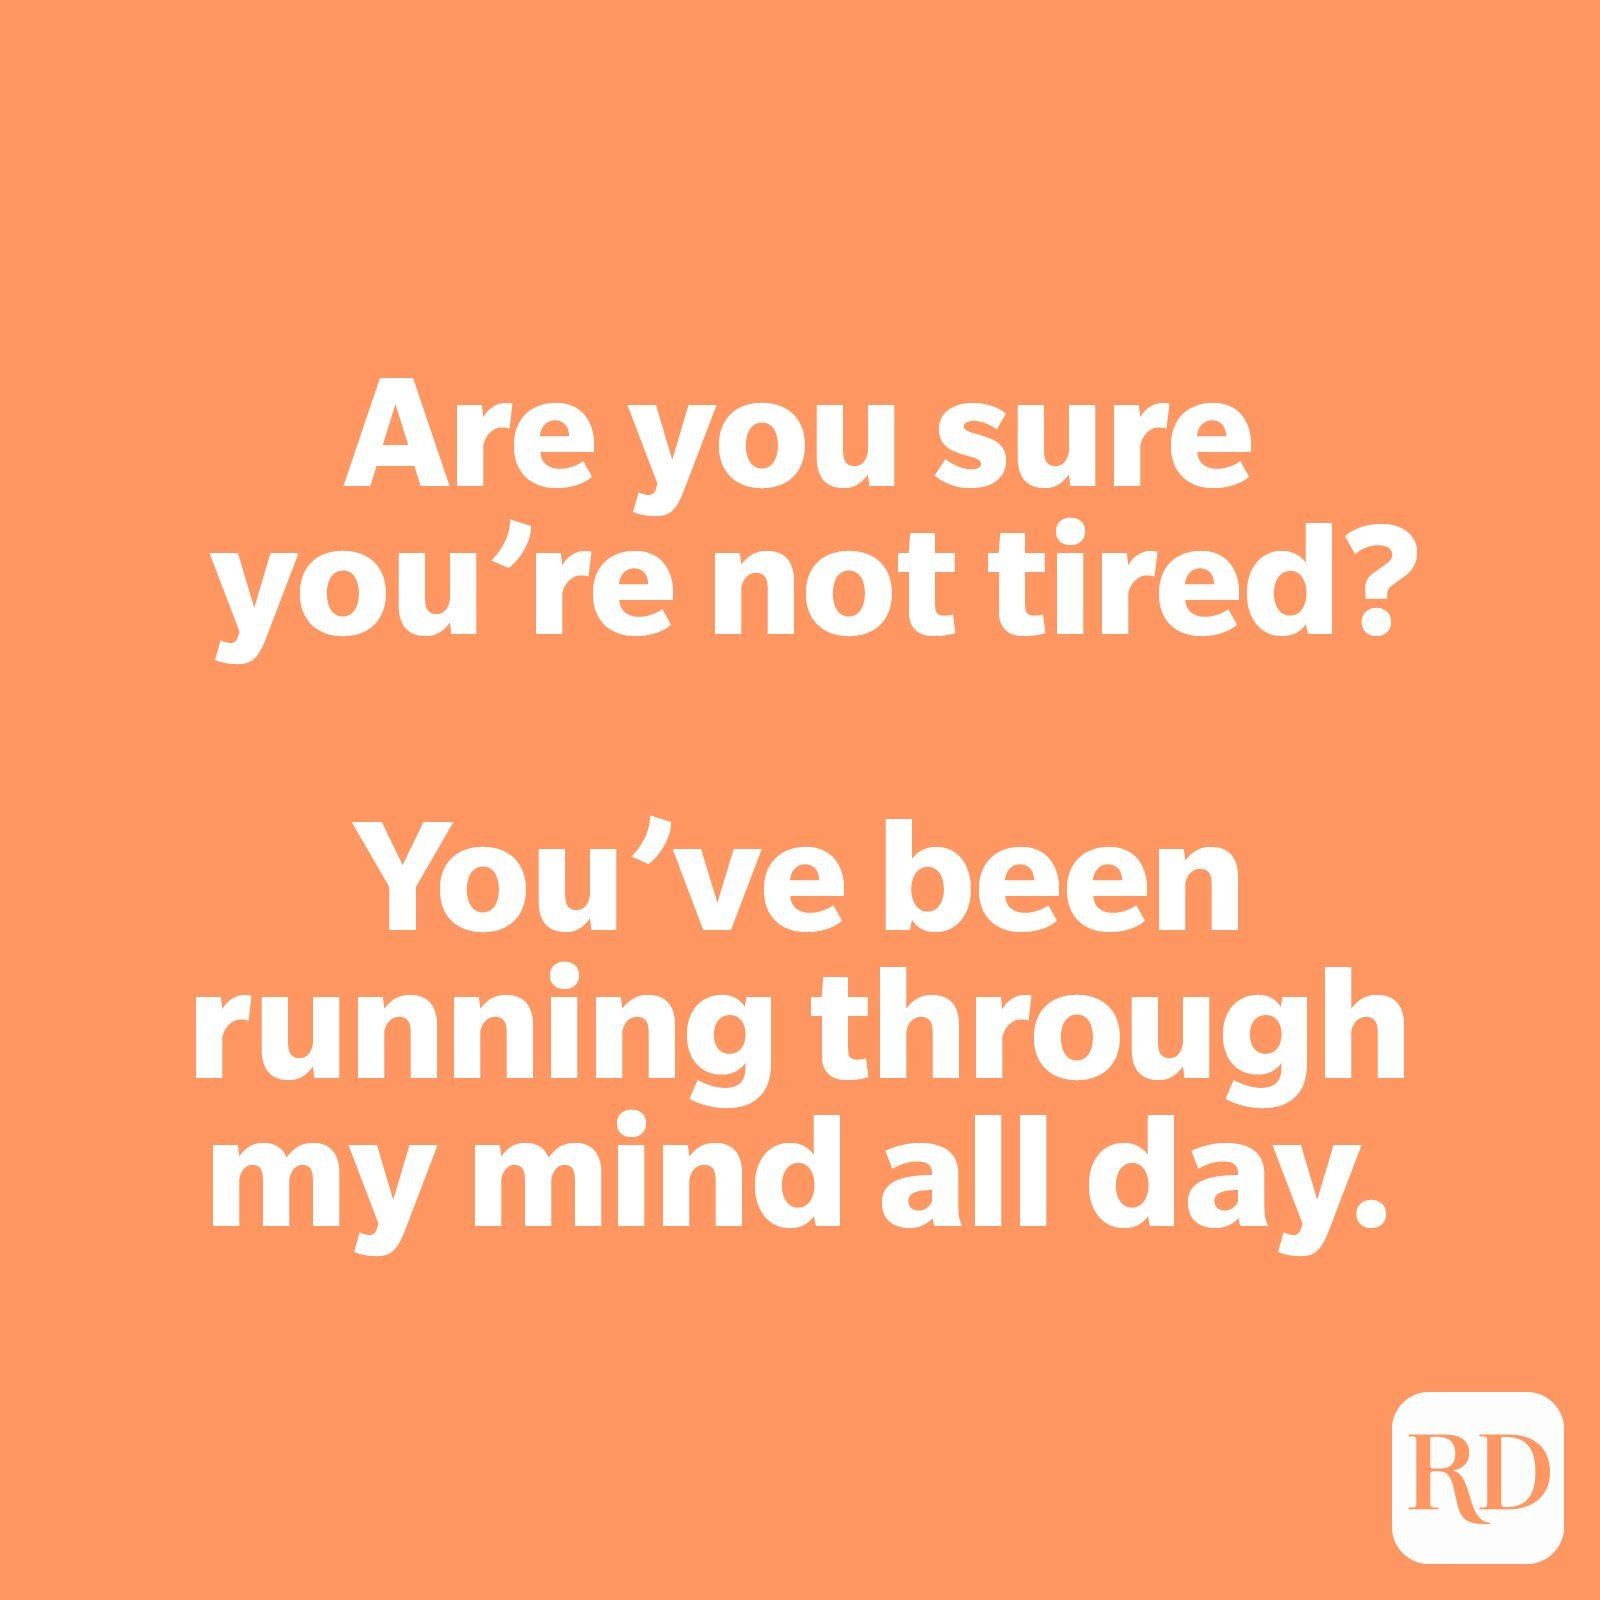 Are you sure you're not tired? You've been running through my mind all day.